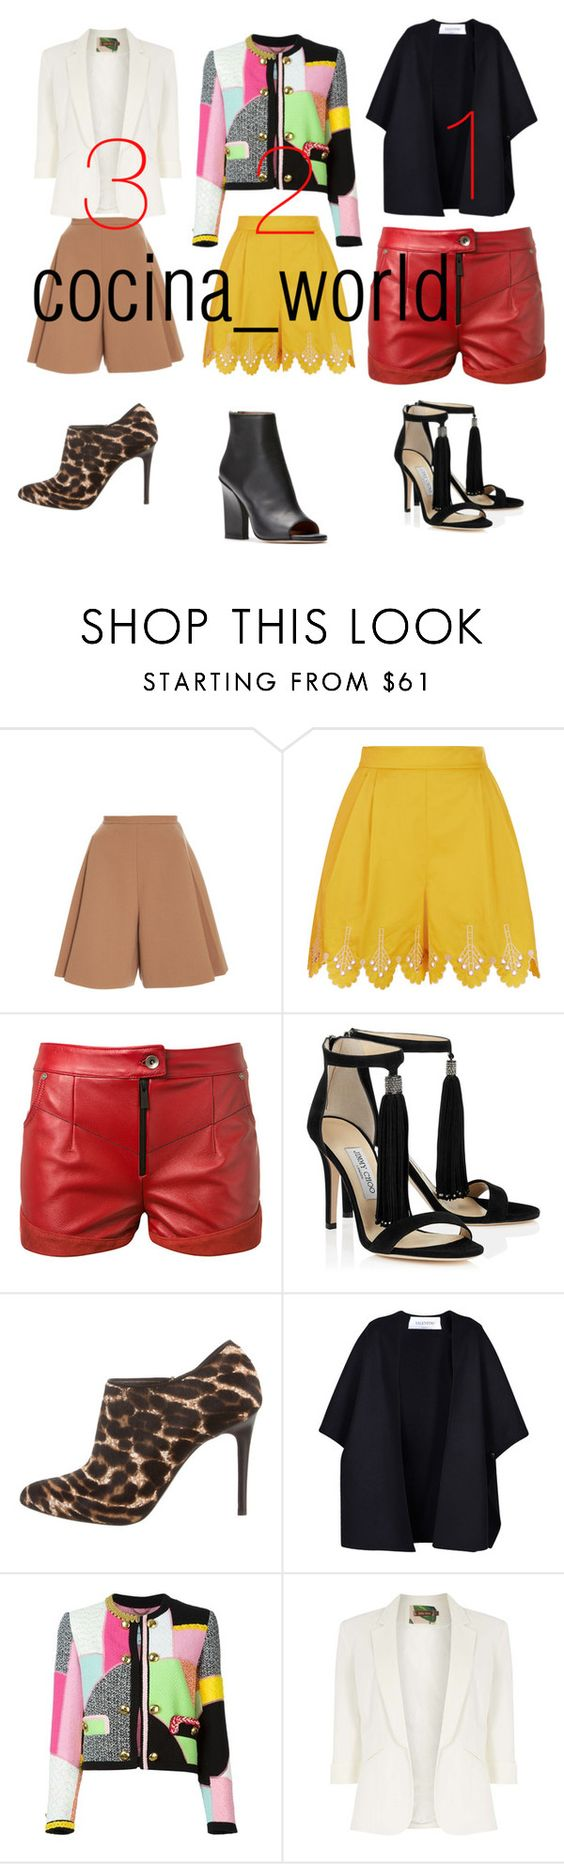 """""""Untitled #141"""" by estabraqx ❤ liked on Polyvore featuring Delpozo, Temperley London, Magda Butrym, Lanvin, Valentino, Moschino and Jolie Moi"""